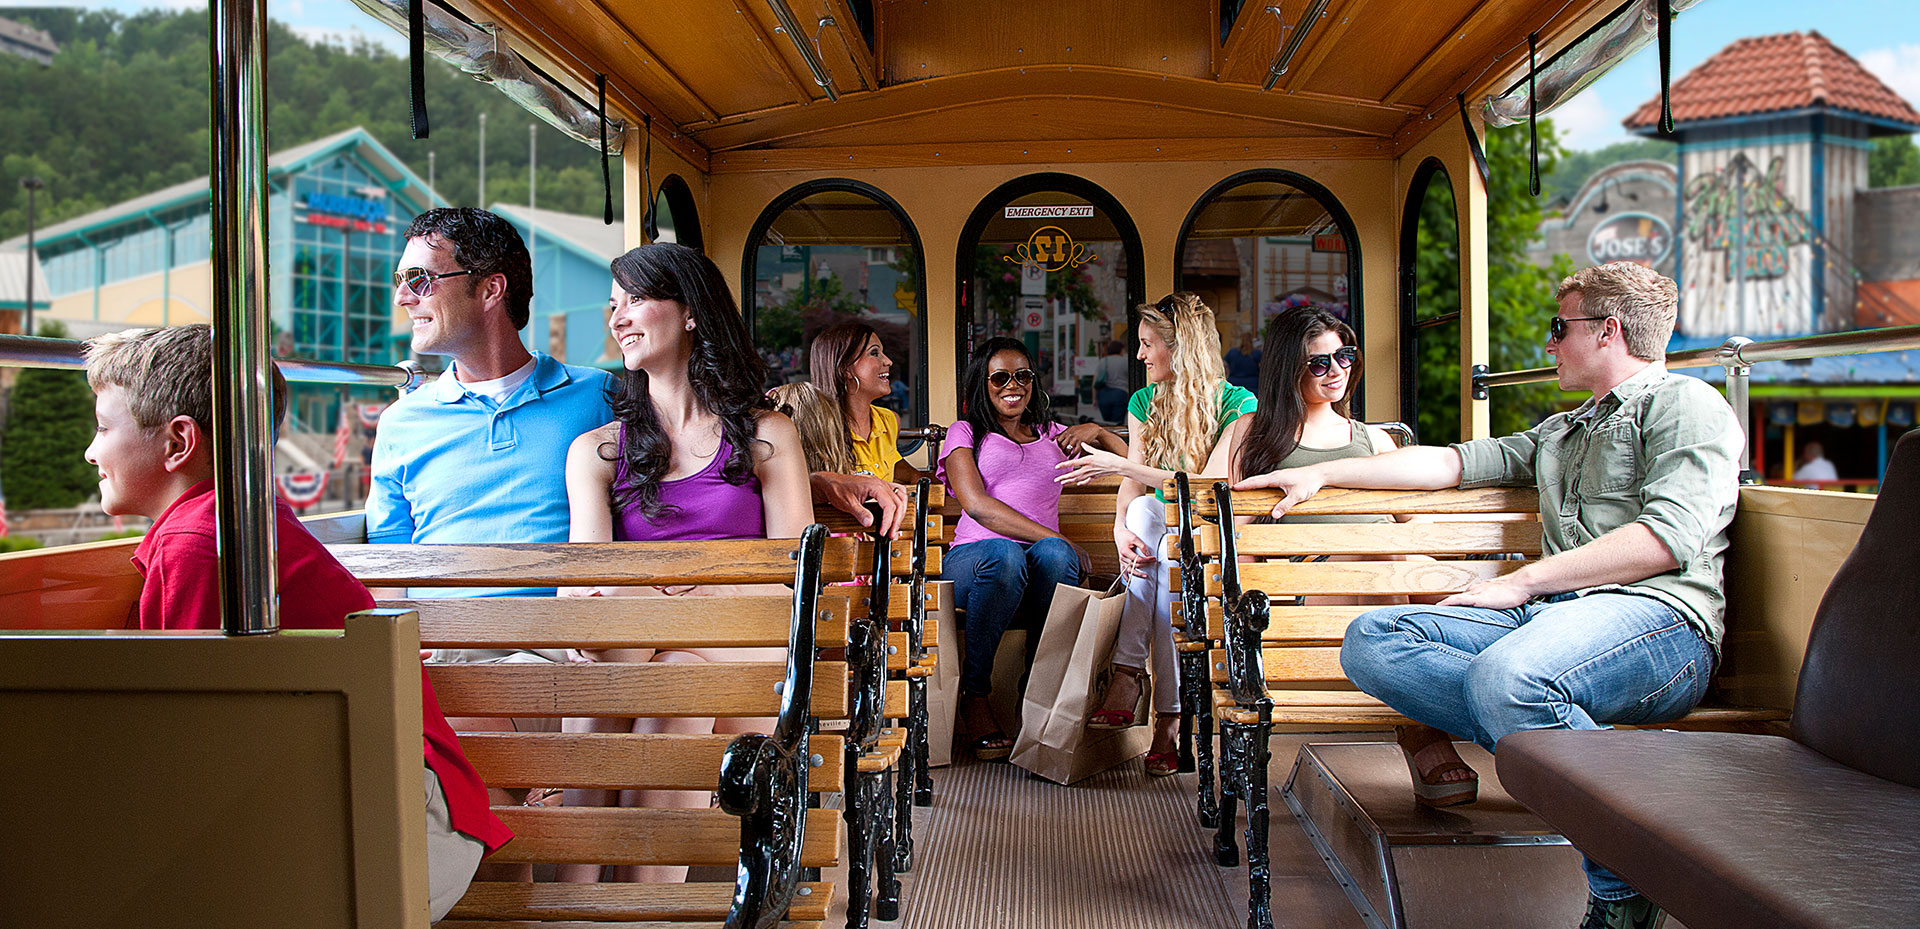 Gatlinburg Trolley | Gatlinburg Attractions | Things To Do In Gatlinburg, TN